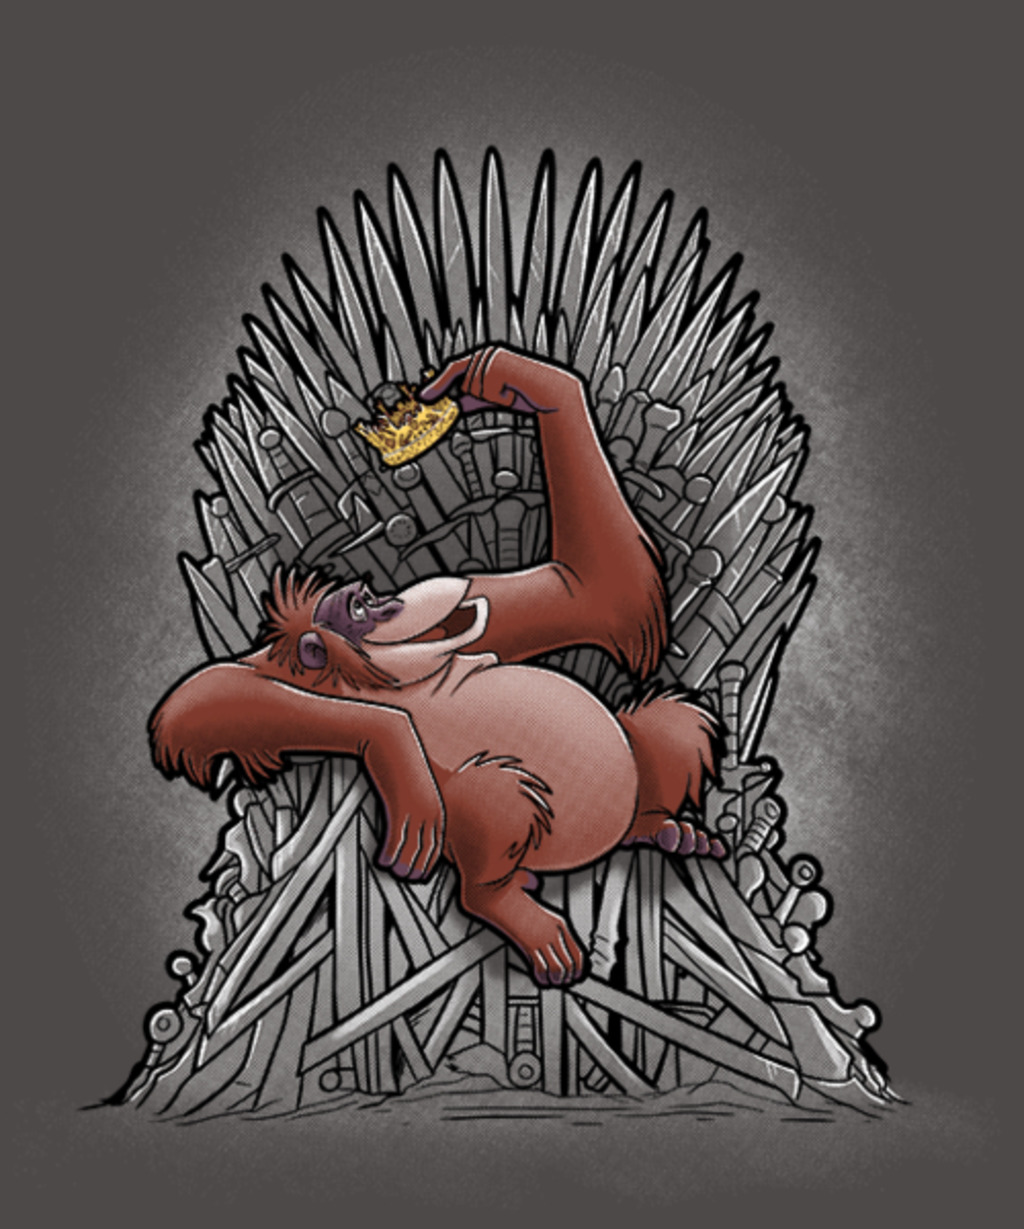 Qwertee: The king